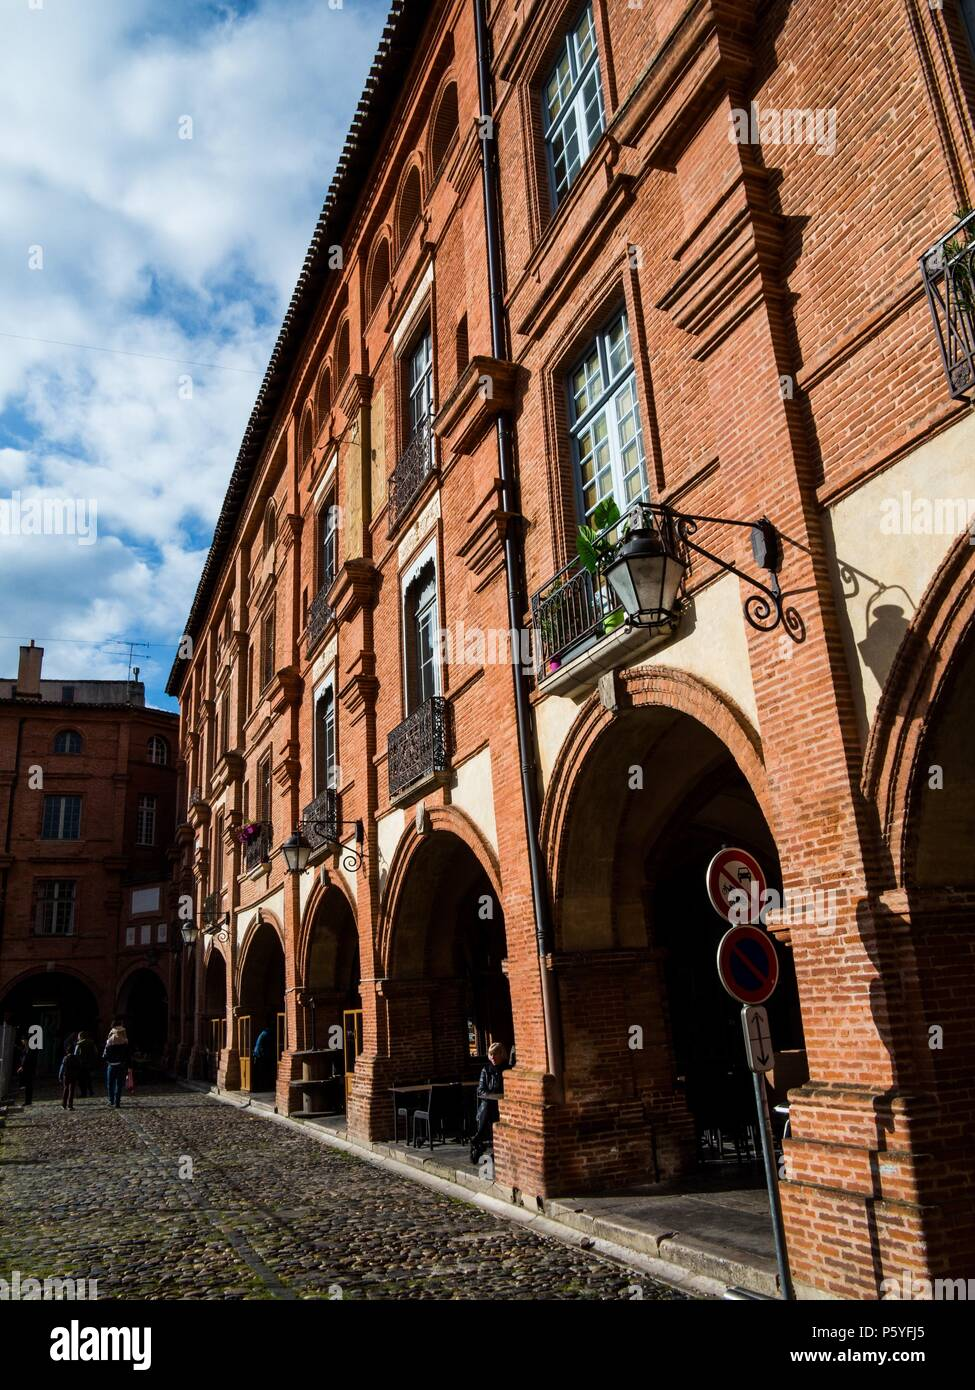 Archs and facades on the Place Nationale in Montauban, Tarn-et-Garonne, Occitanie region  March 2018 Photo Damien Grenon credit:Damien Grenon/Photo12 - Stock Image